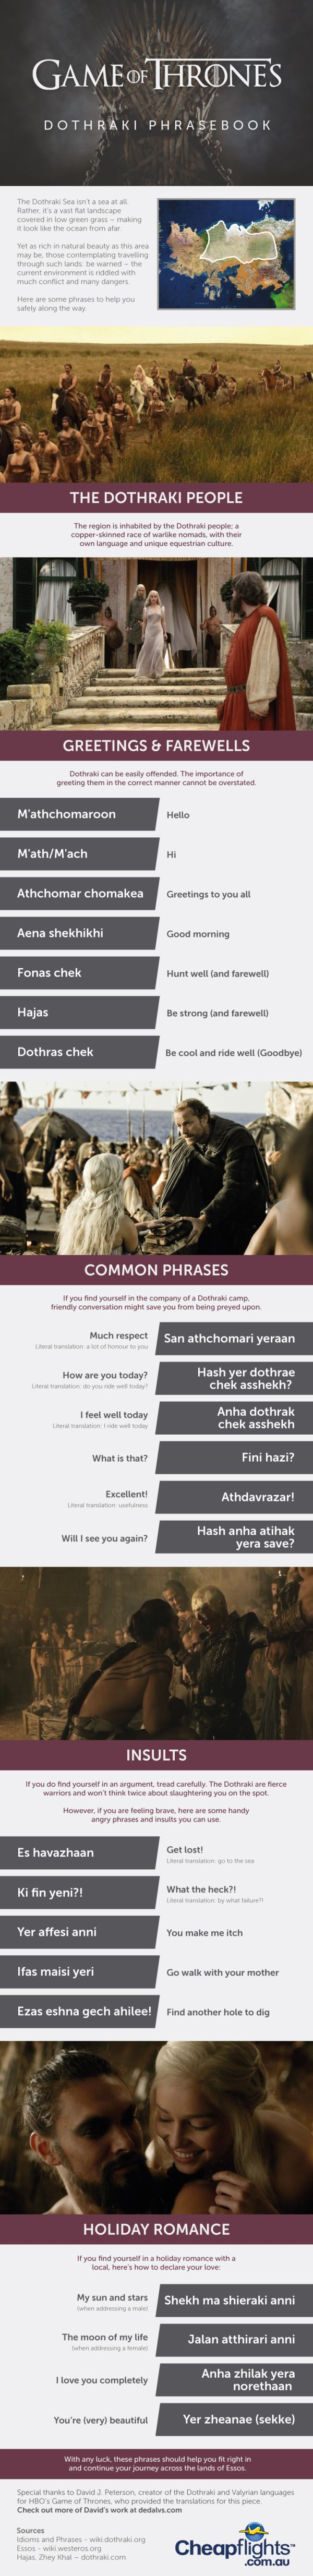 game-of-thrones-dothraki-phrasebook